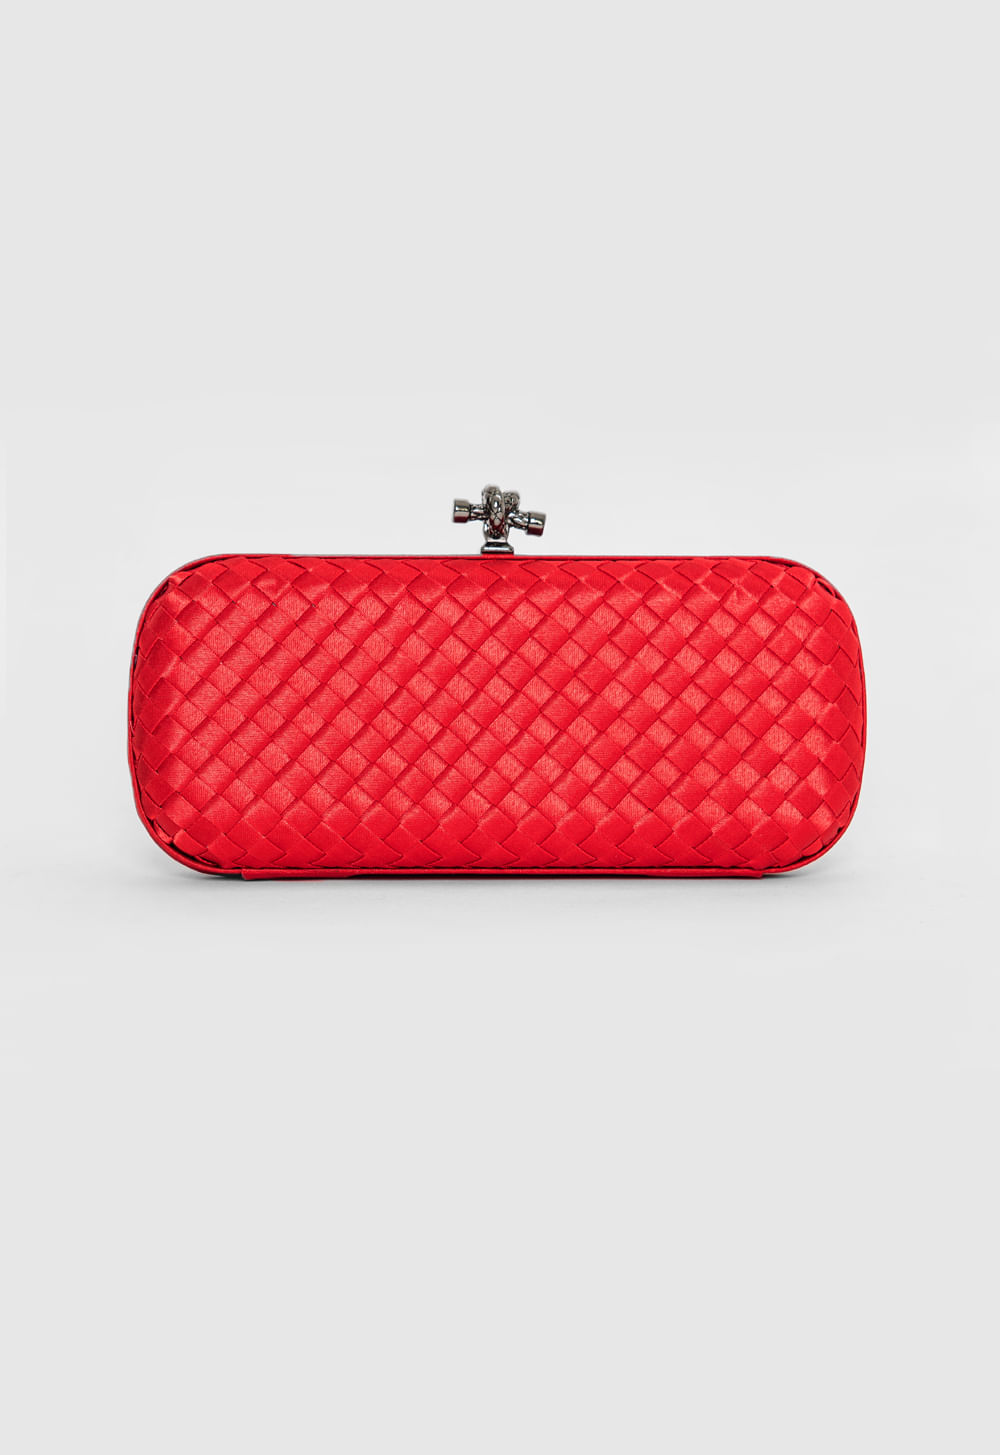 33fc51ca2 Clutch Baguete grande Powerlook vermelho - powerlook